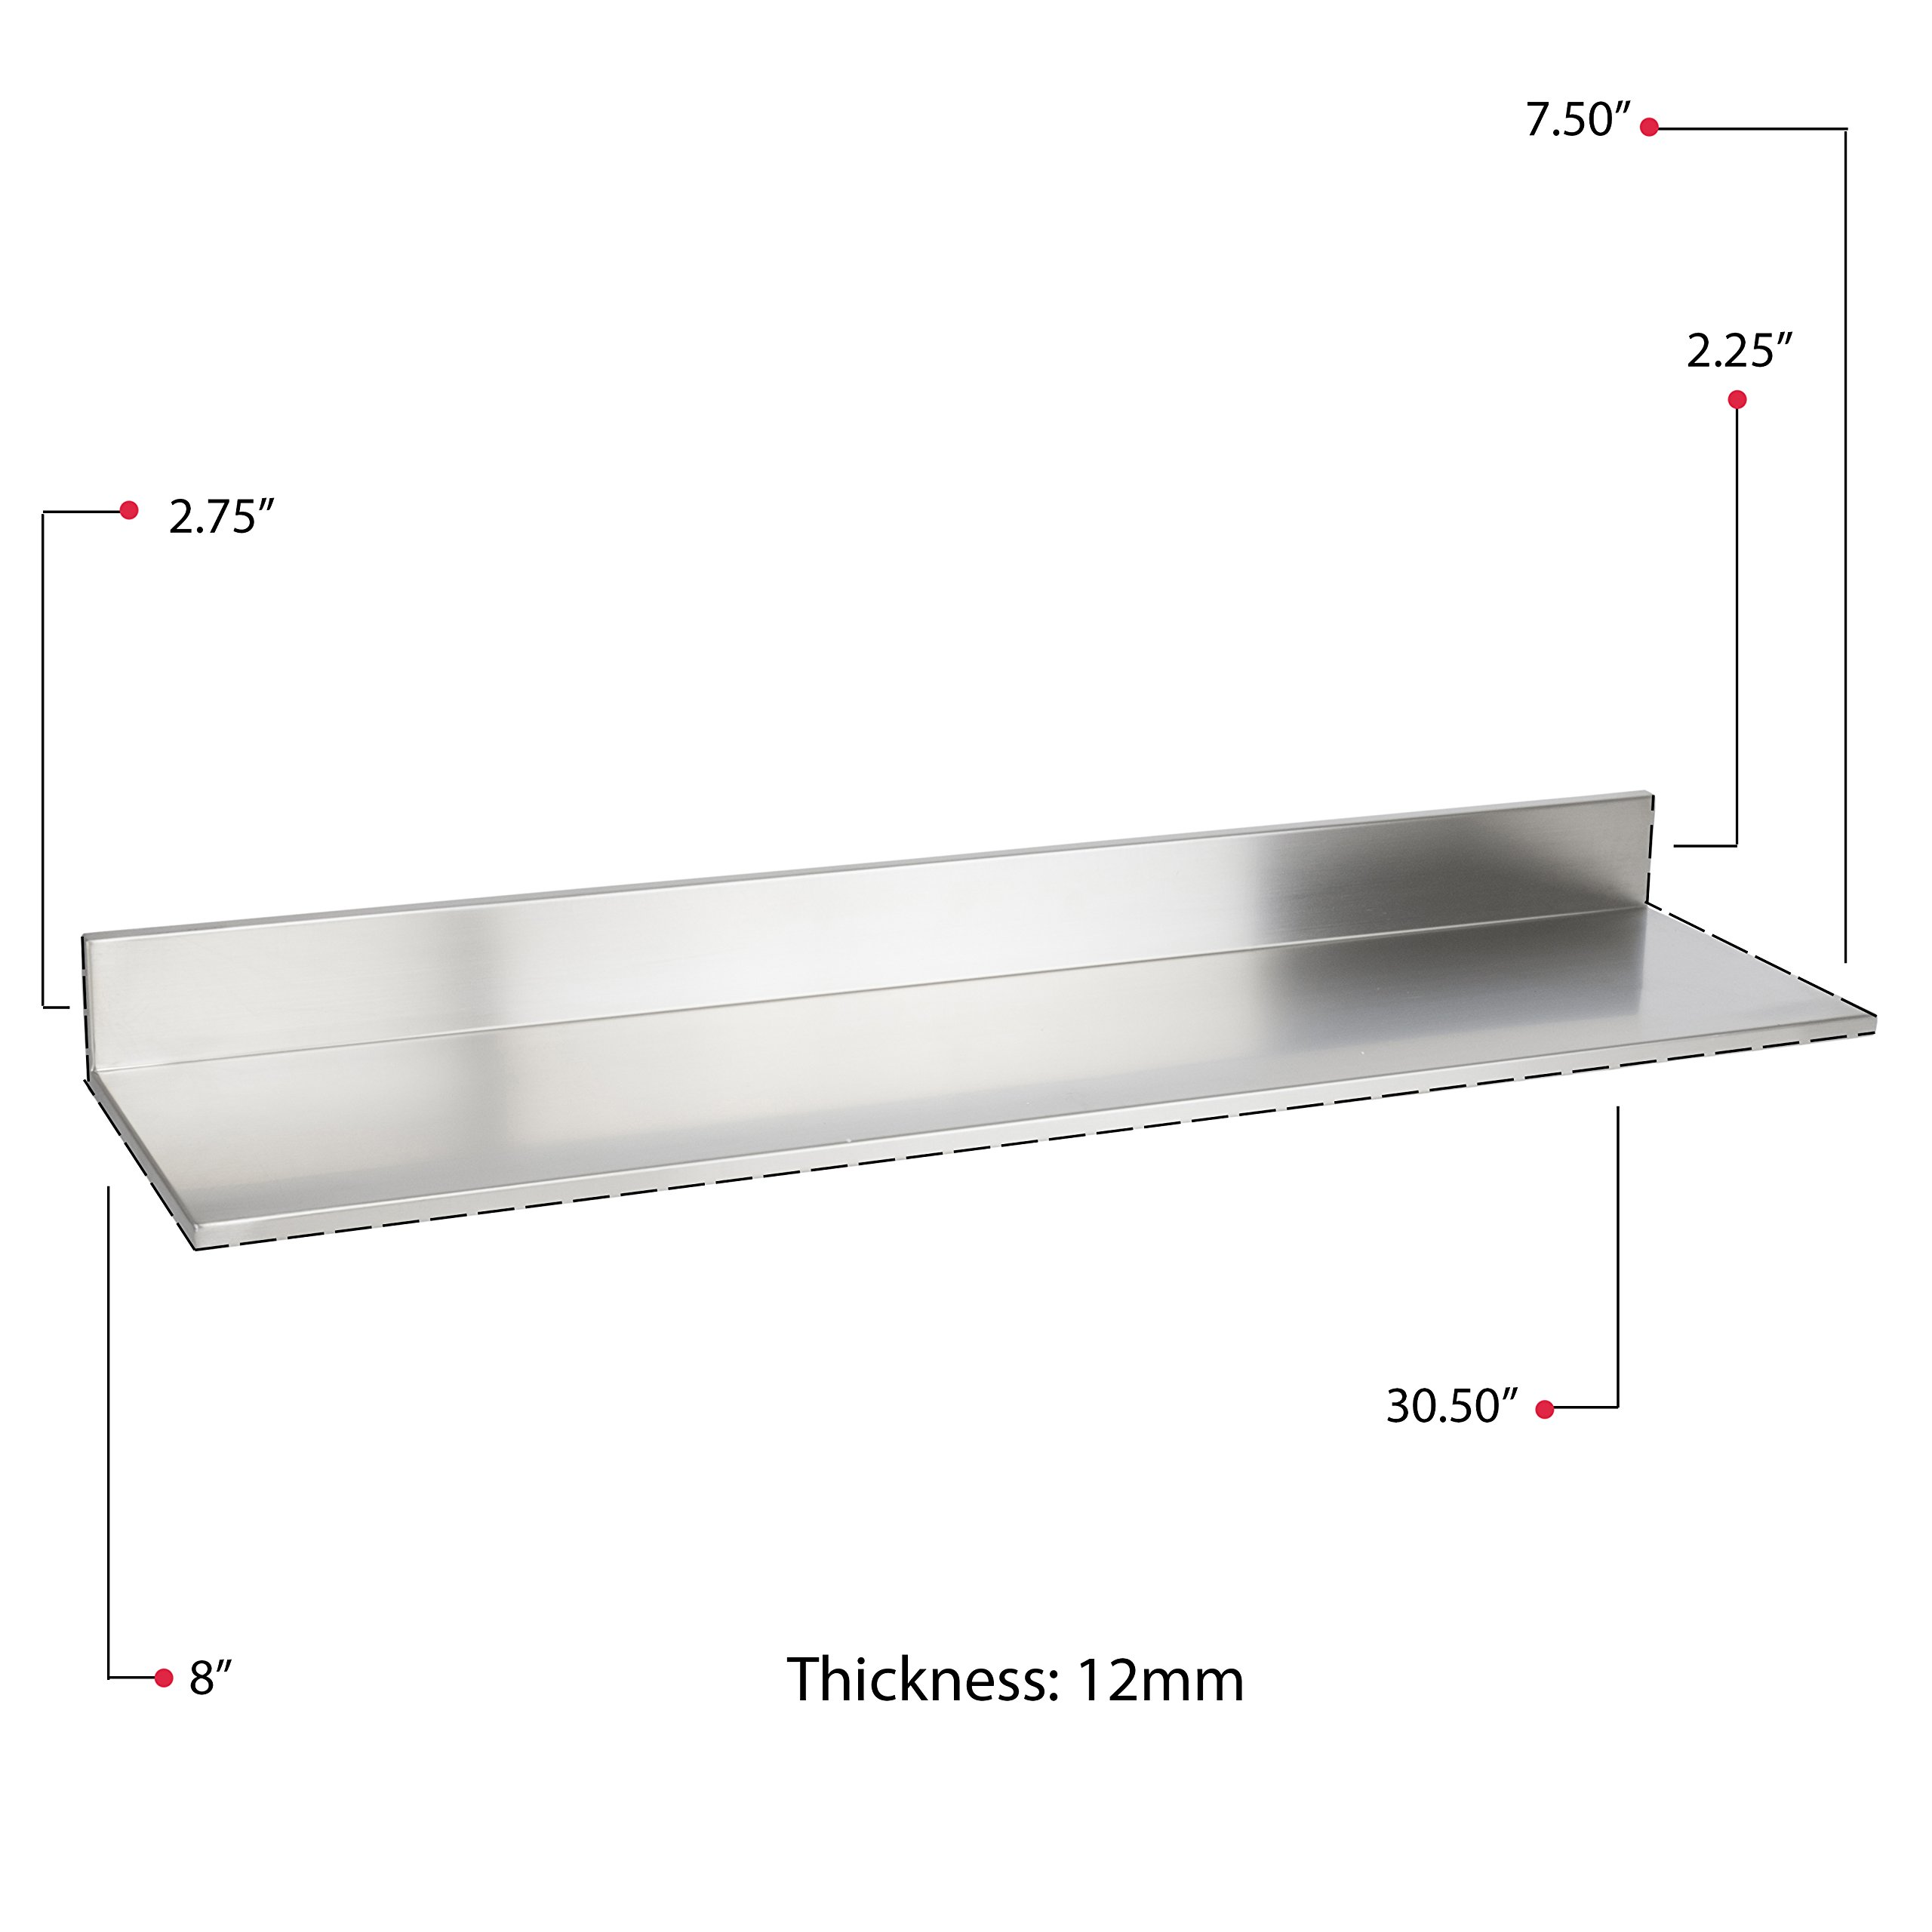 Stainless Steel Wall Mount Commercial and Home Use Premium Quality 30.50 Inches Kitchen Floating Shelves Set of 2 Silver by Fasthomegoods (Image #8)